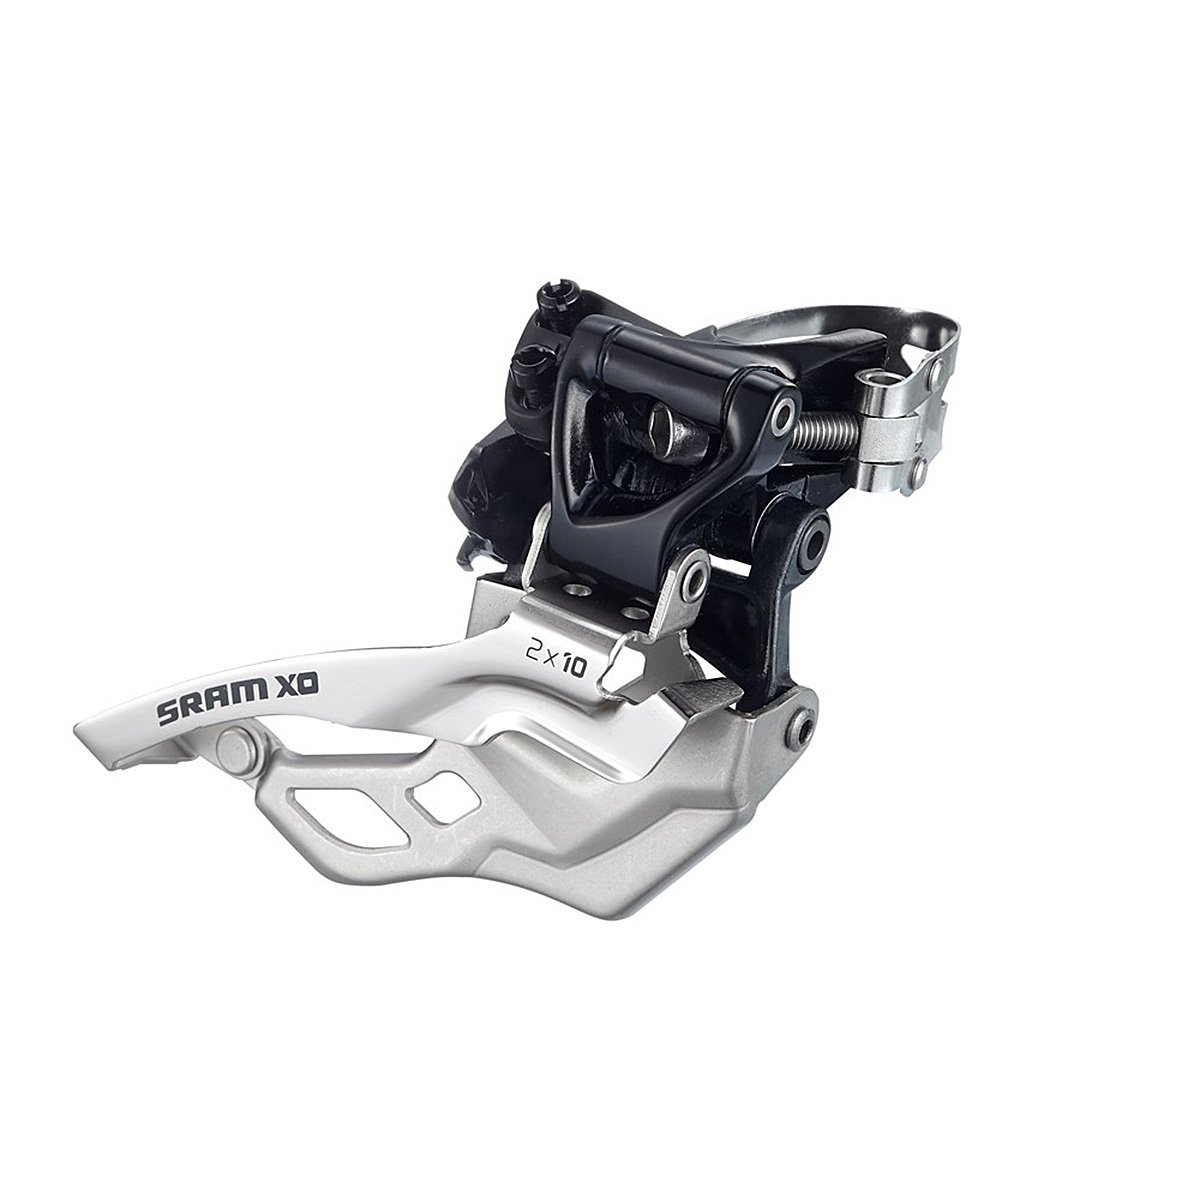 SRAM X0 Bicycle Front Derailleur with 3 x 10 High-Clamp 318 Compact Bottom Pull Cyclone Bicycle 00.7615.133.100